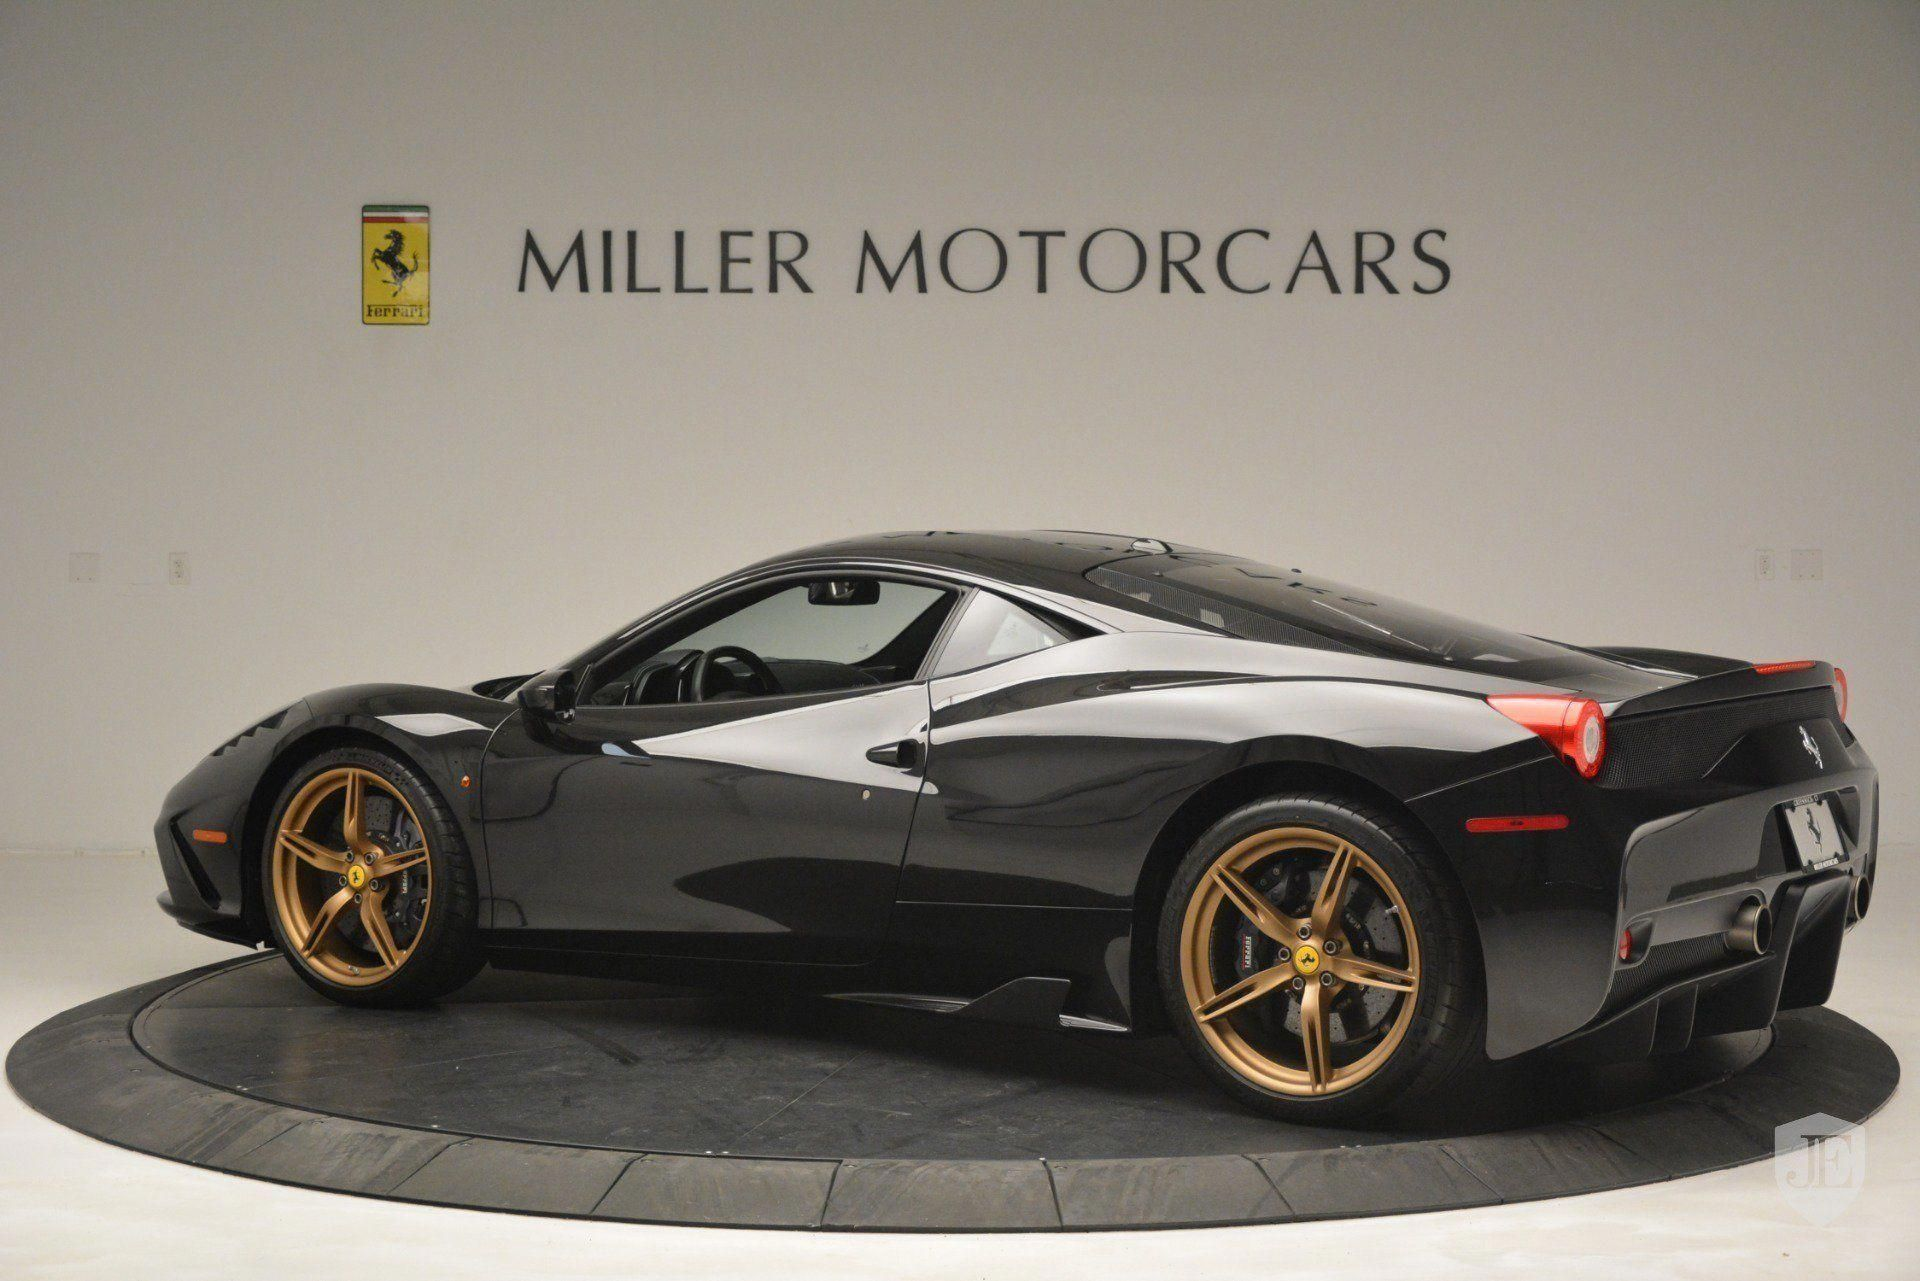 2014 Ferrari 458 Speciale in Greenwich, CT, United States for sale (10493956) #Ferrari458 #ferrari458italia 2014 Ferrari 458 Speciale in Greenwich, CT, United States for sale (10493956) #Ferrari458 #ferrari458italia